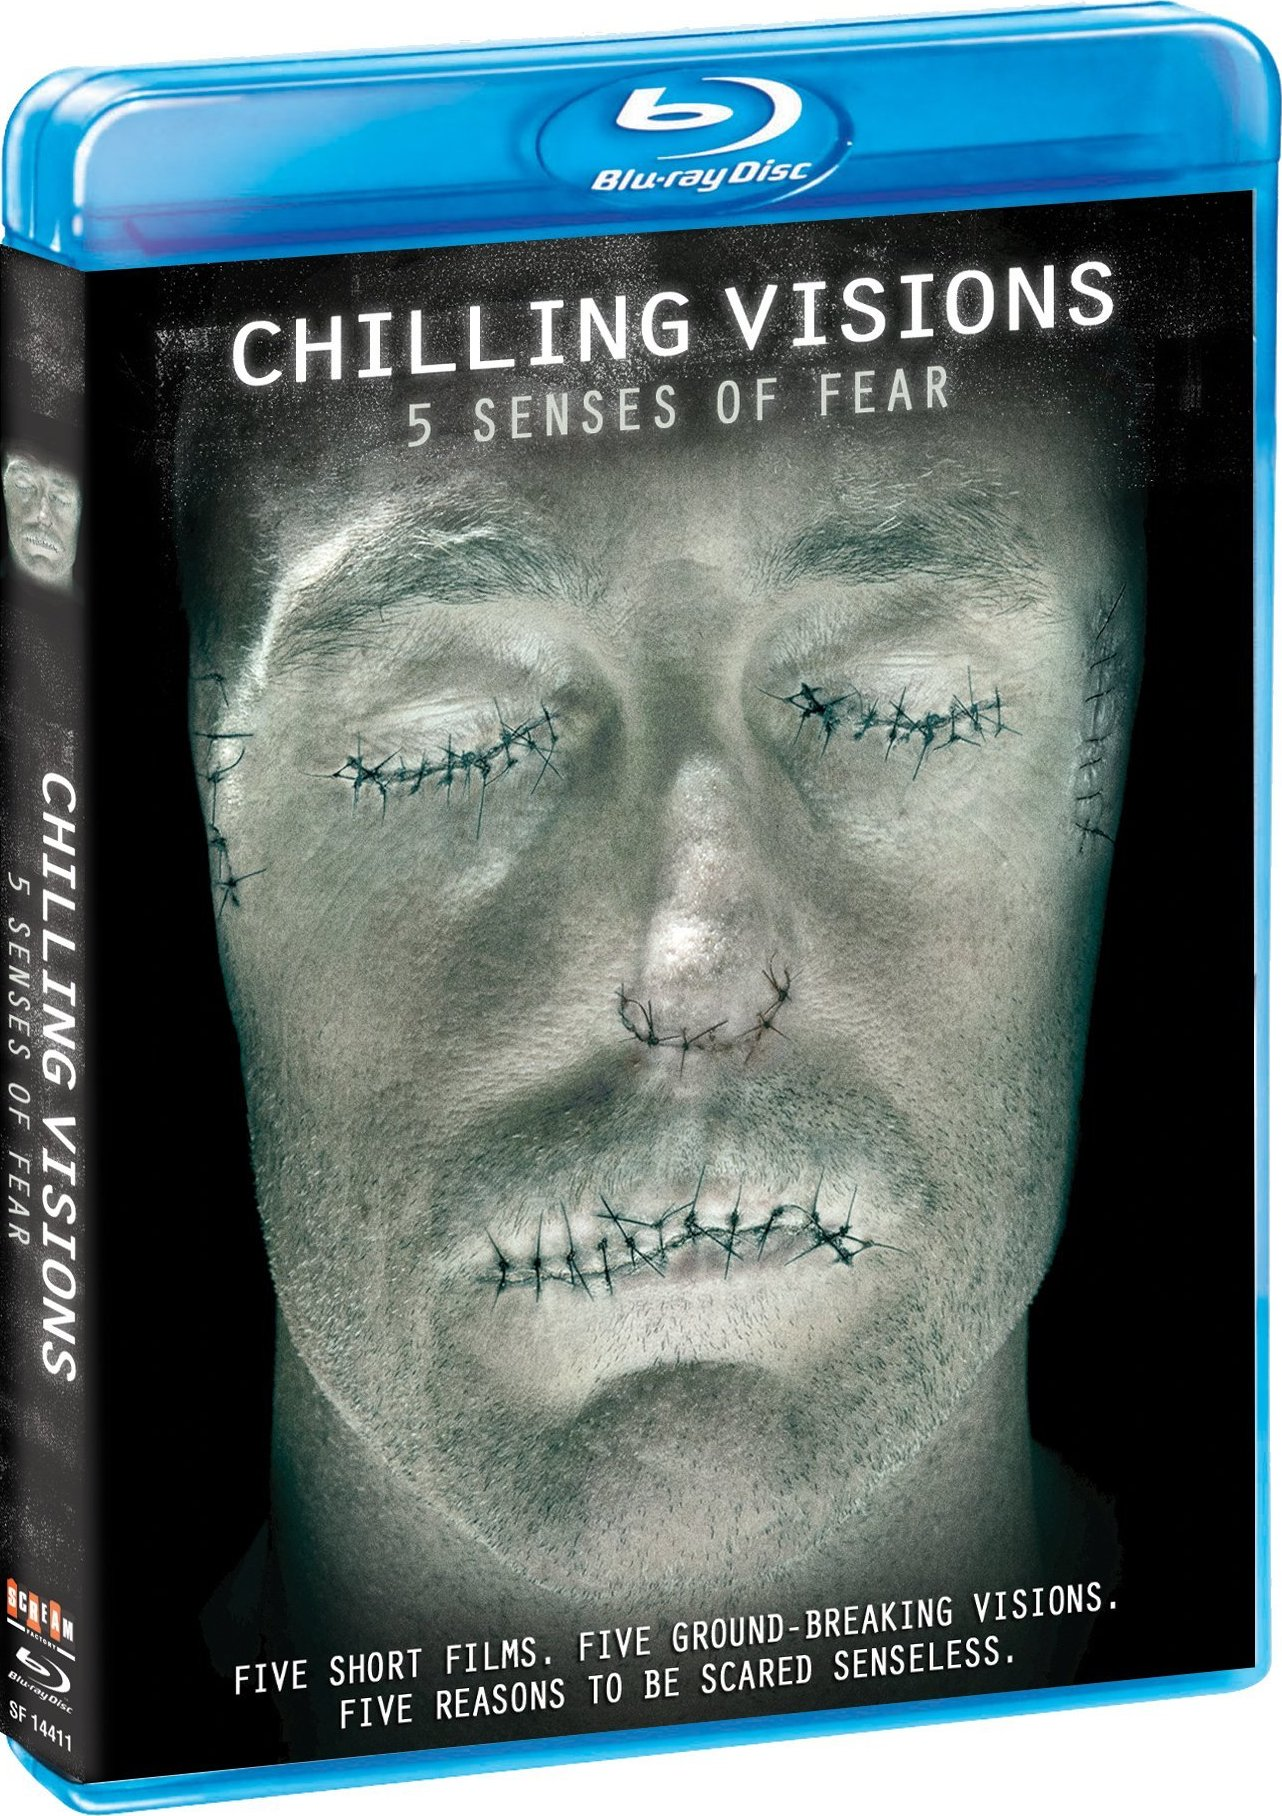 Download Chilling Visions 5 Senses Of Fear 2013 720p BluRay 600MB